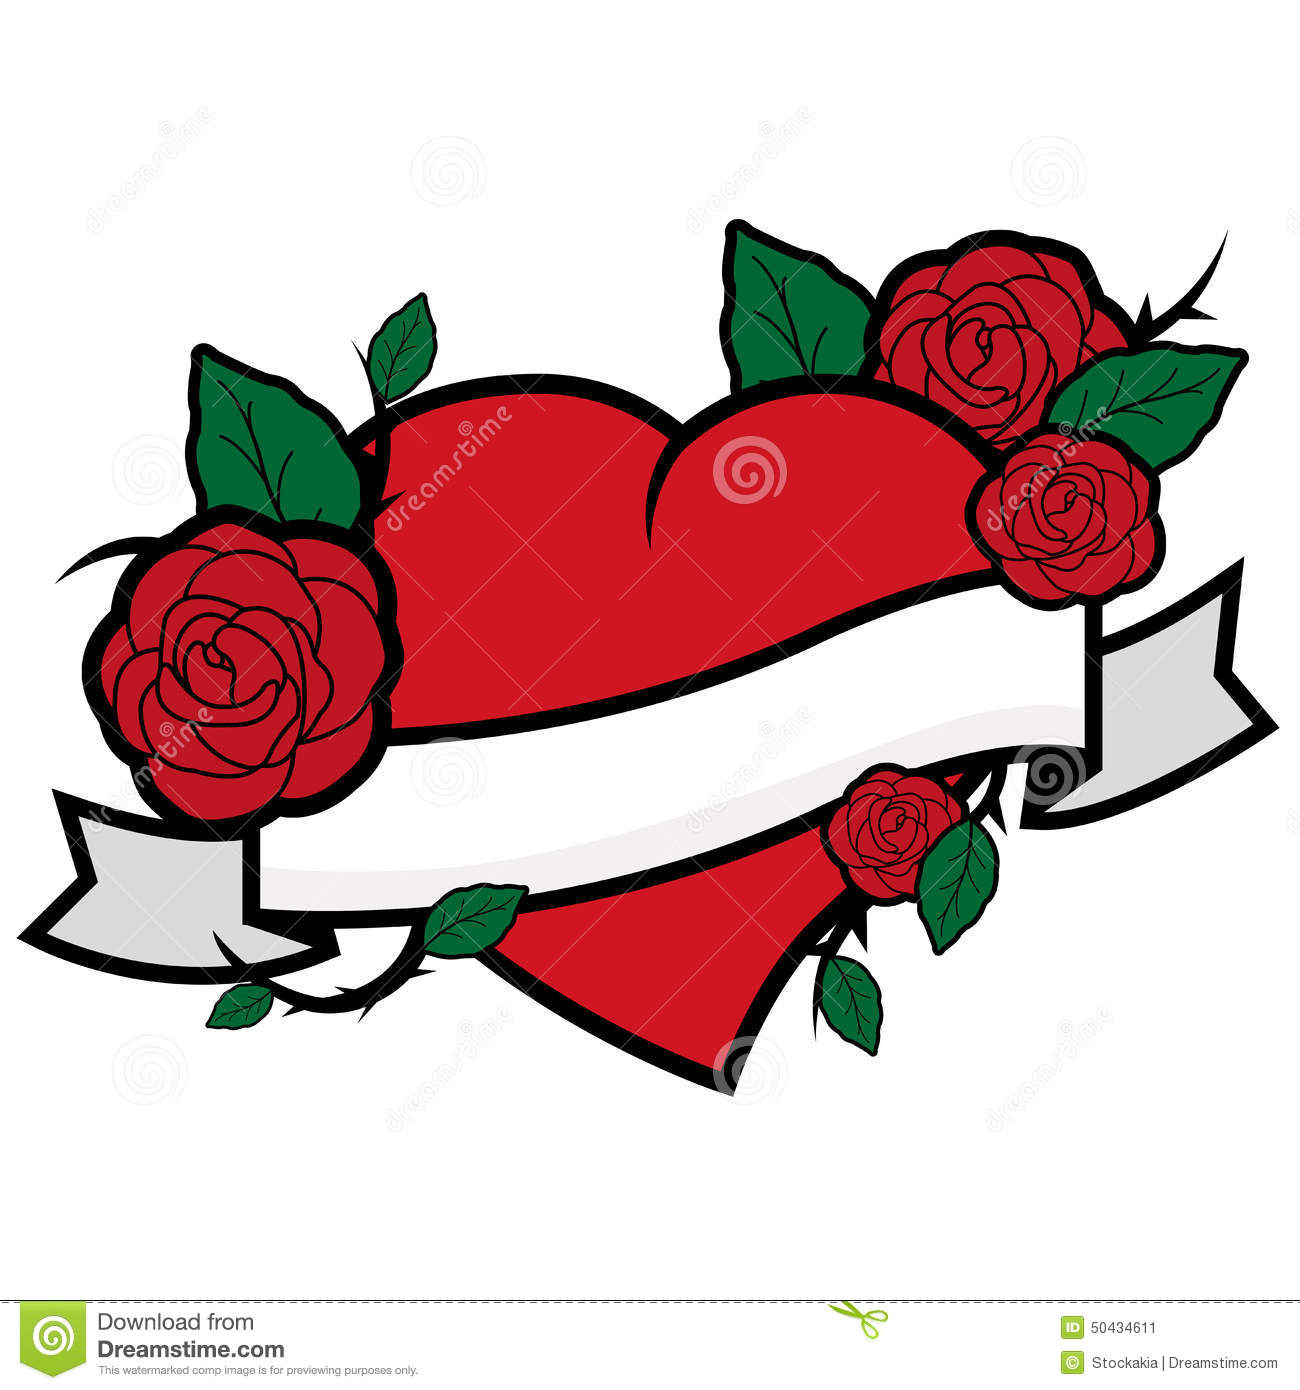 Heart With Rose And Banner: Heart, Roses And Banner Stock Vector. Illustration Of